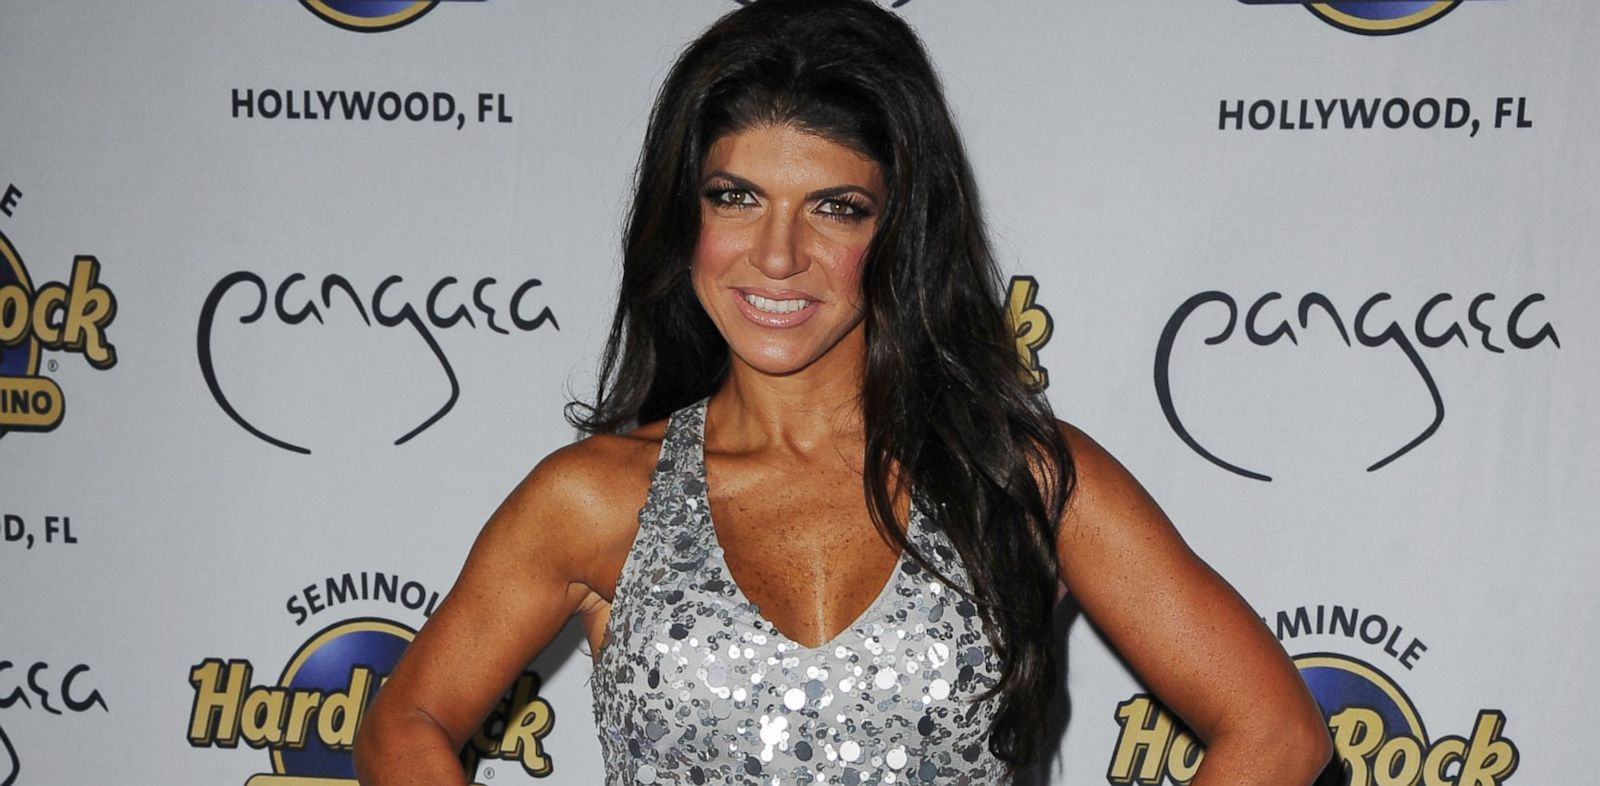 PHOTO: Teresa Giudice